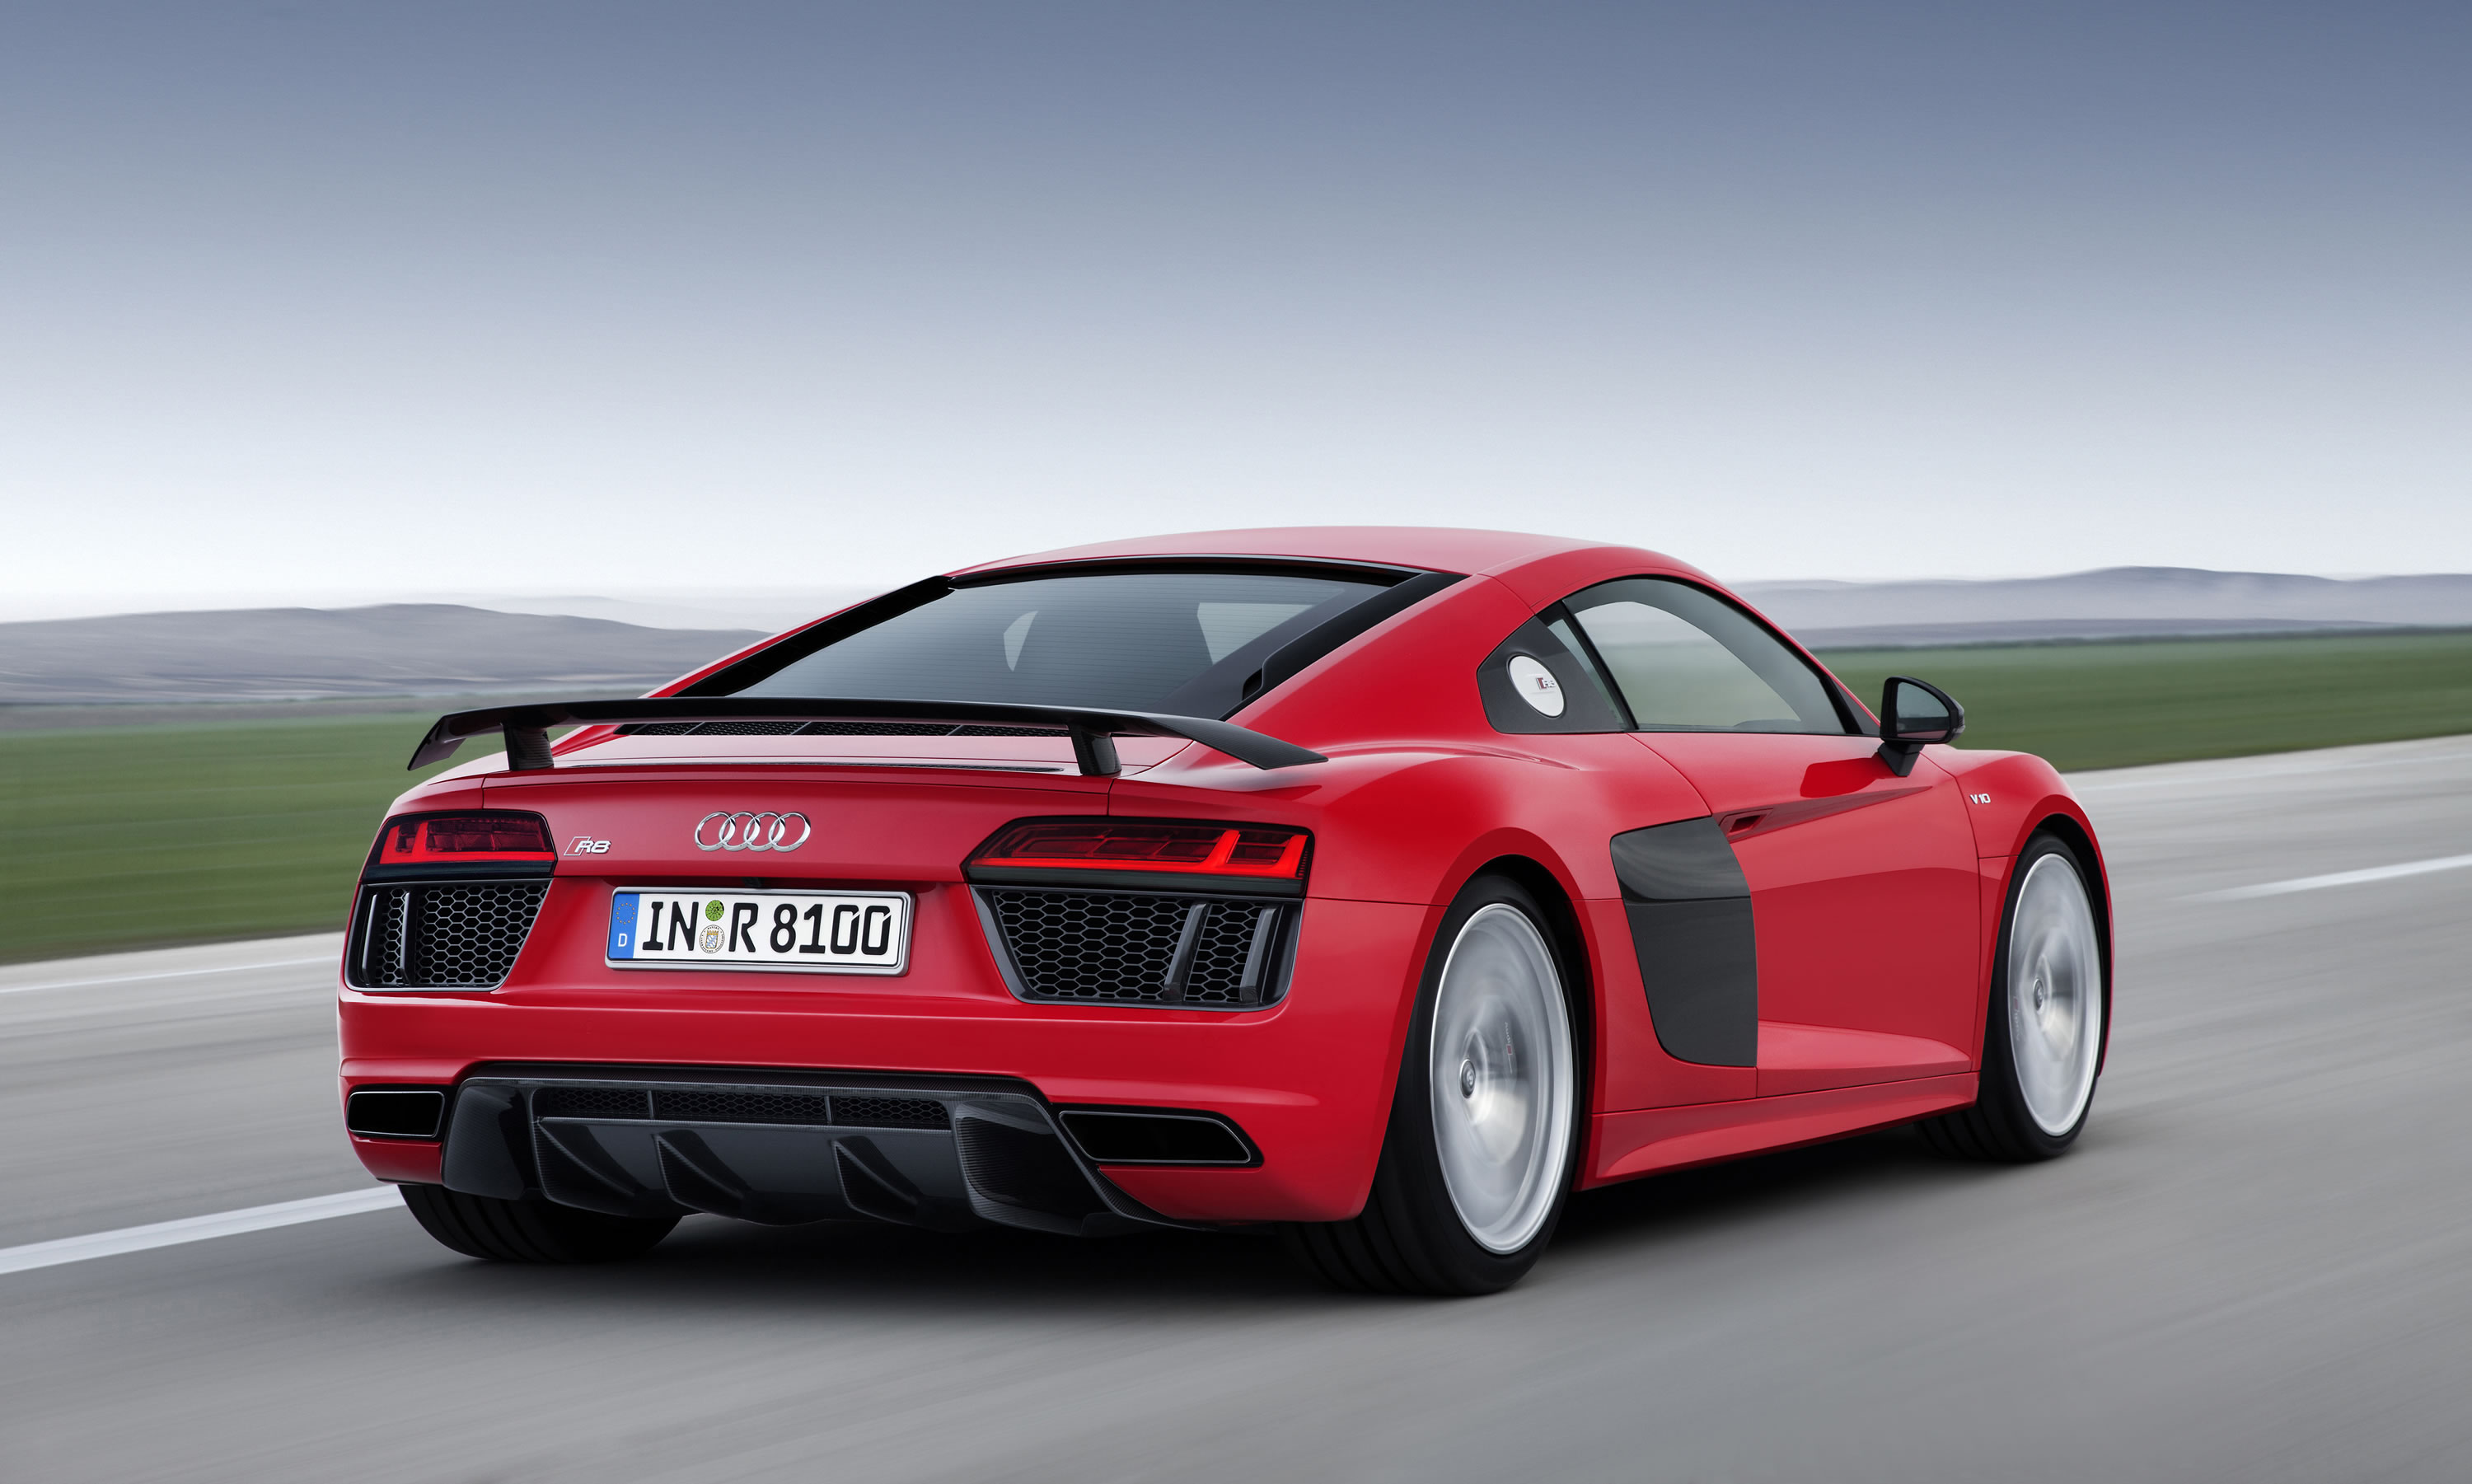 Beau The Design Of The 2016 R8 V10 Plus Reflects The Powerful Sporty Character  Of The R8